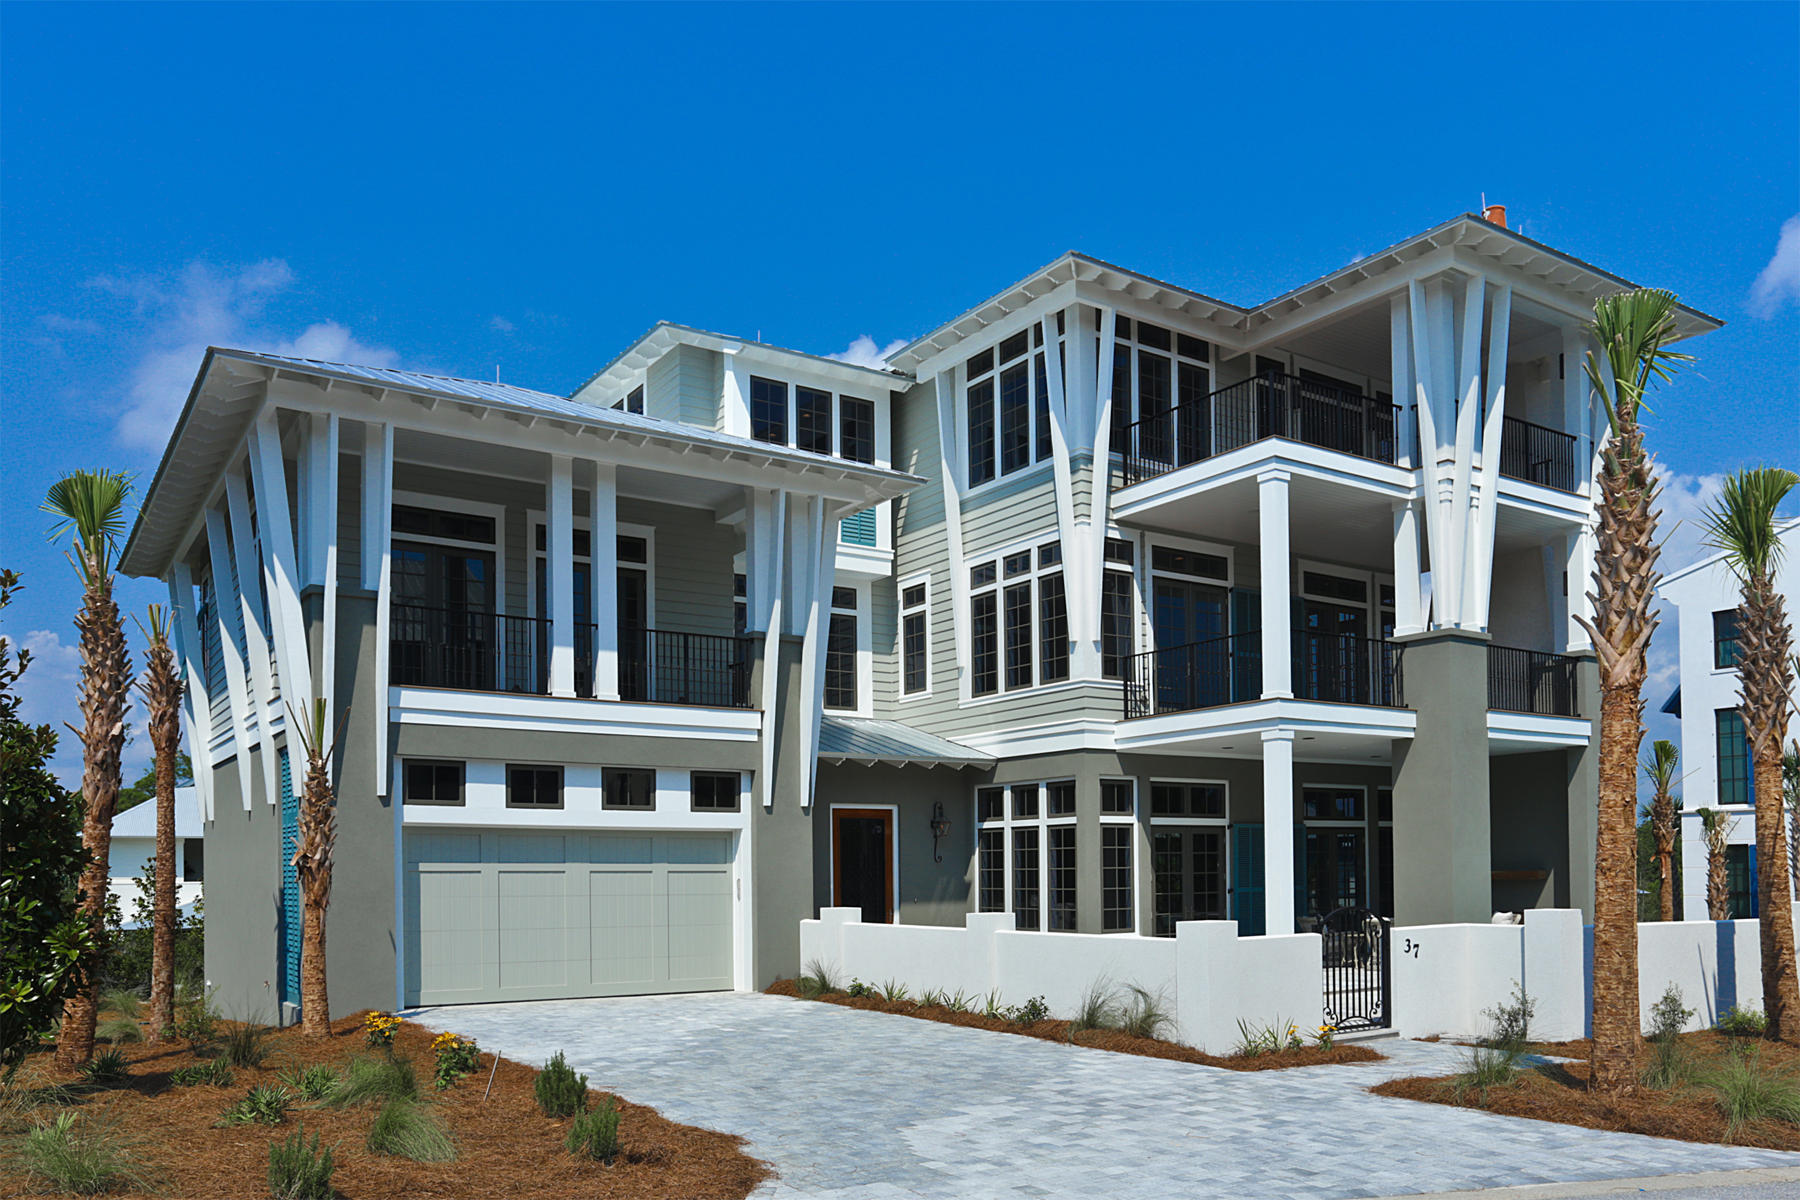 Single Family Home for Sale at UNOBSTRUCTED WESTERN VIEWS 37 E St. Lucia Ln Santa Rosa Beach, Florida 32459 United States